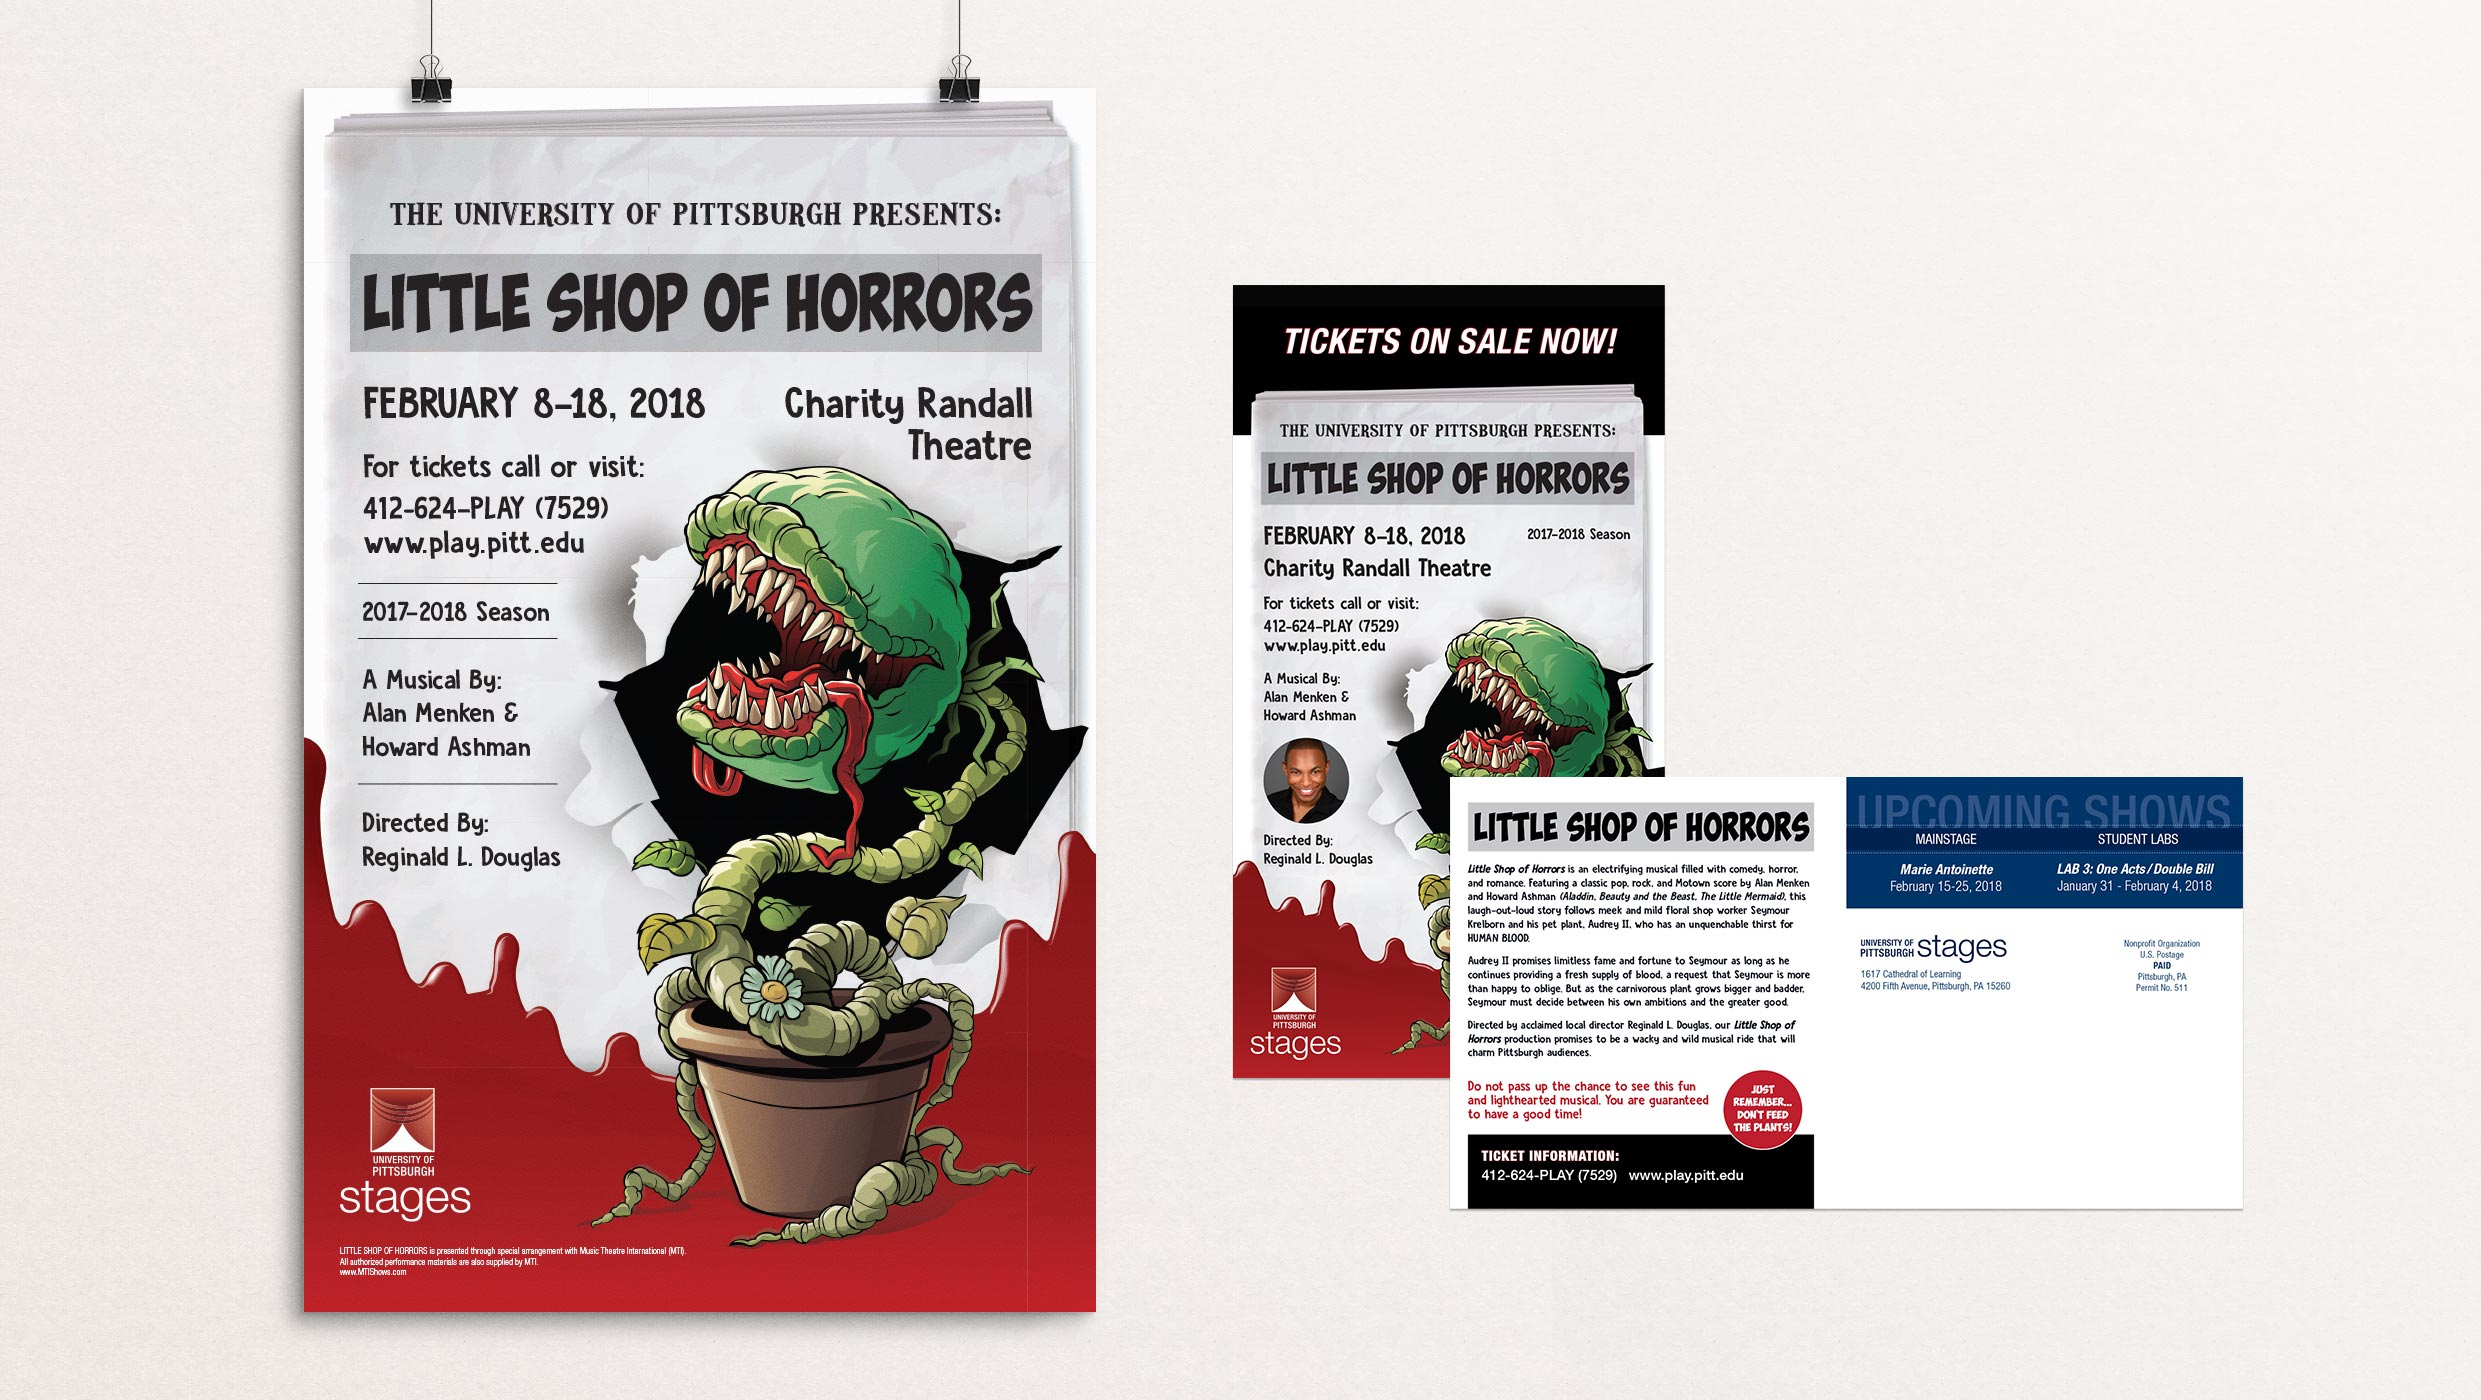 Little Shop of Horrors poster designed by Tara Hoover